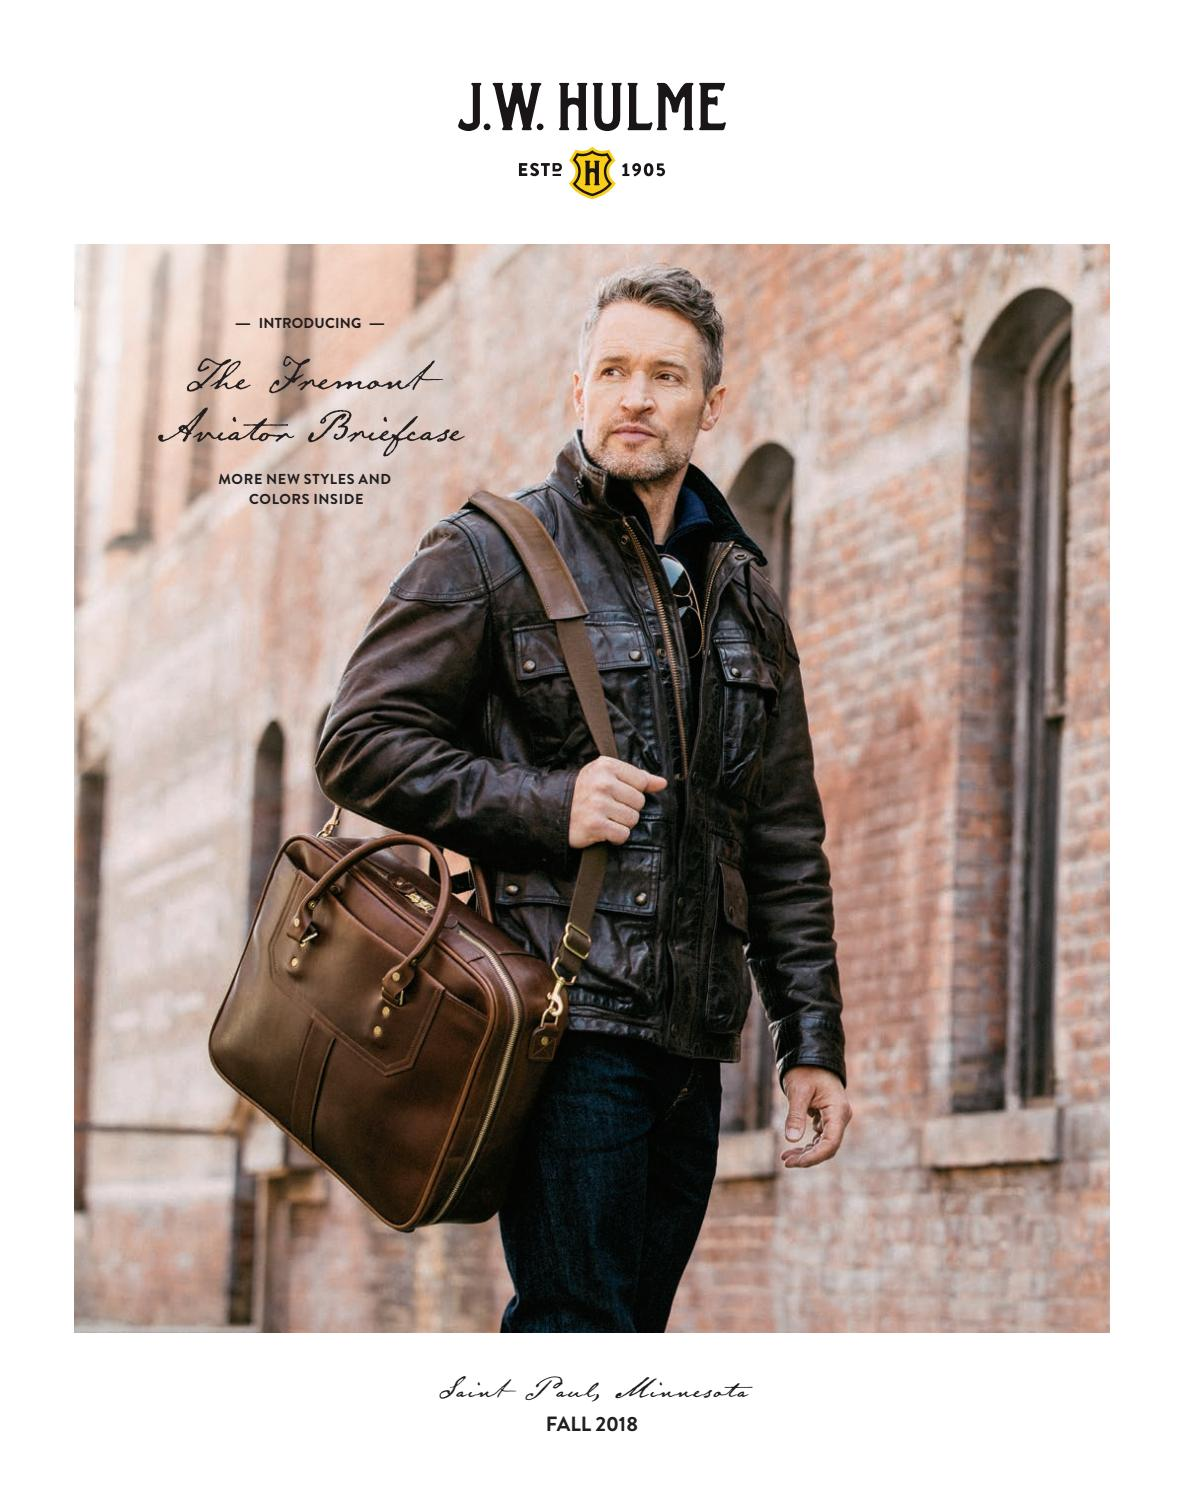 f9ccba8f3be J.W. Hulme   Fall 2018 by J.W. Hulme Co. - issuu